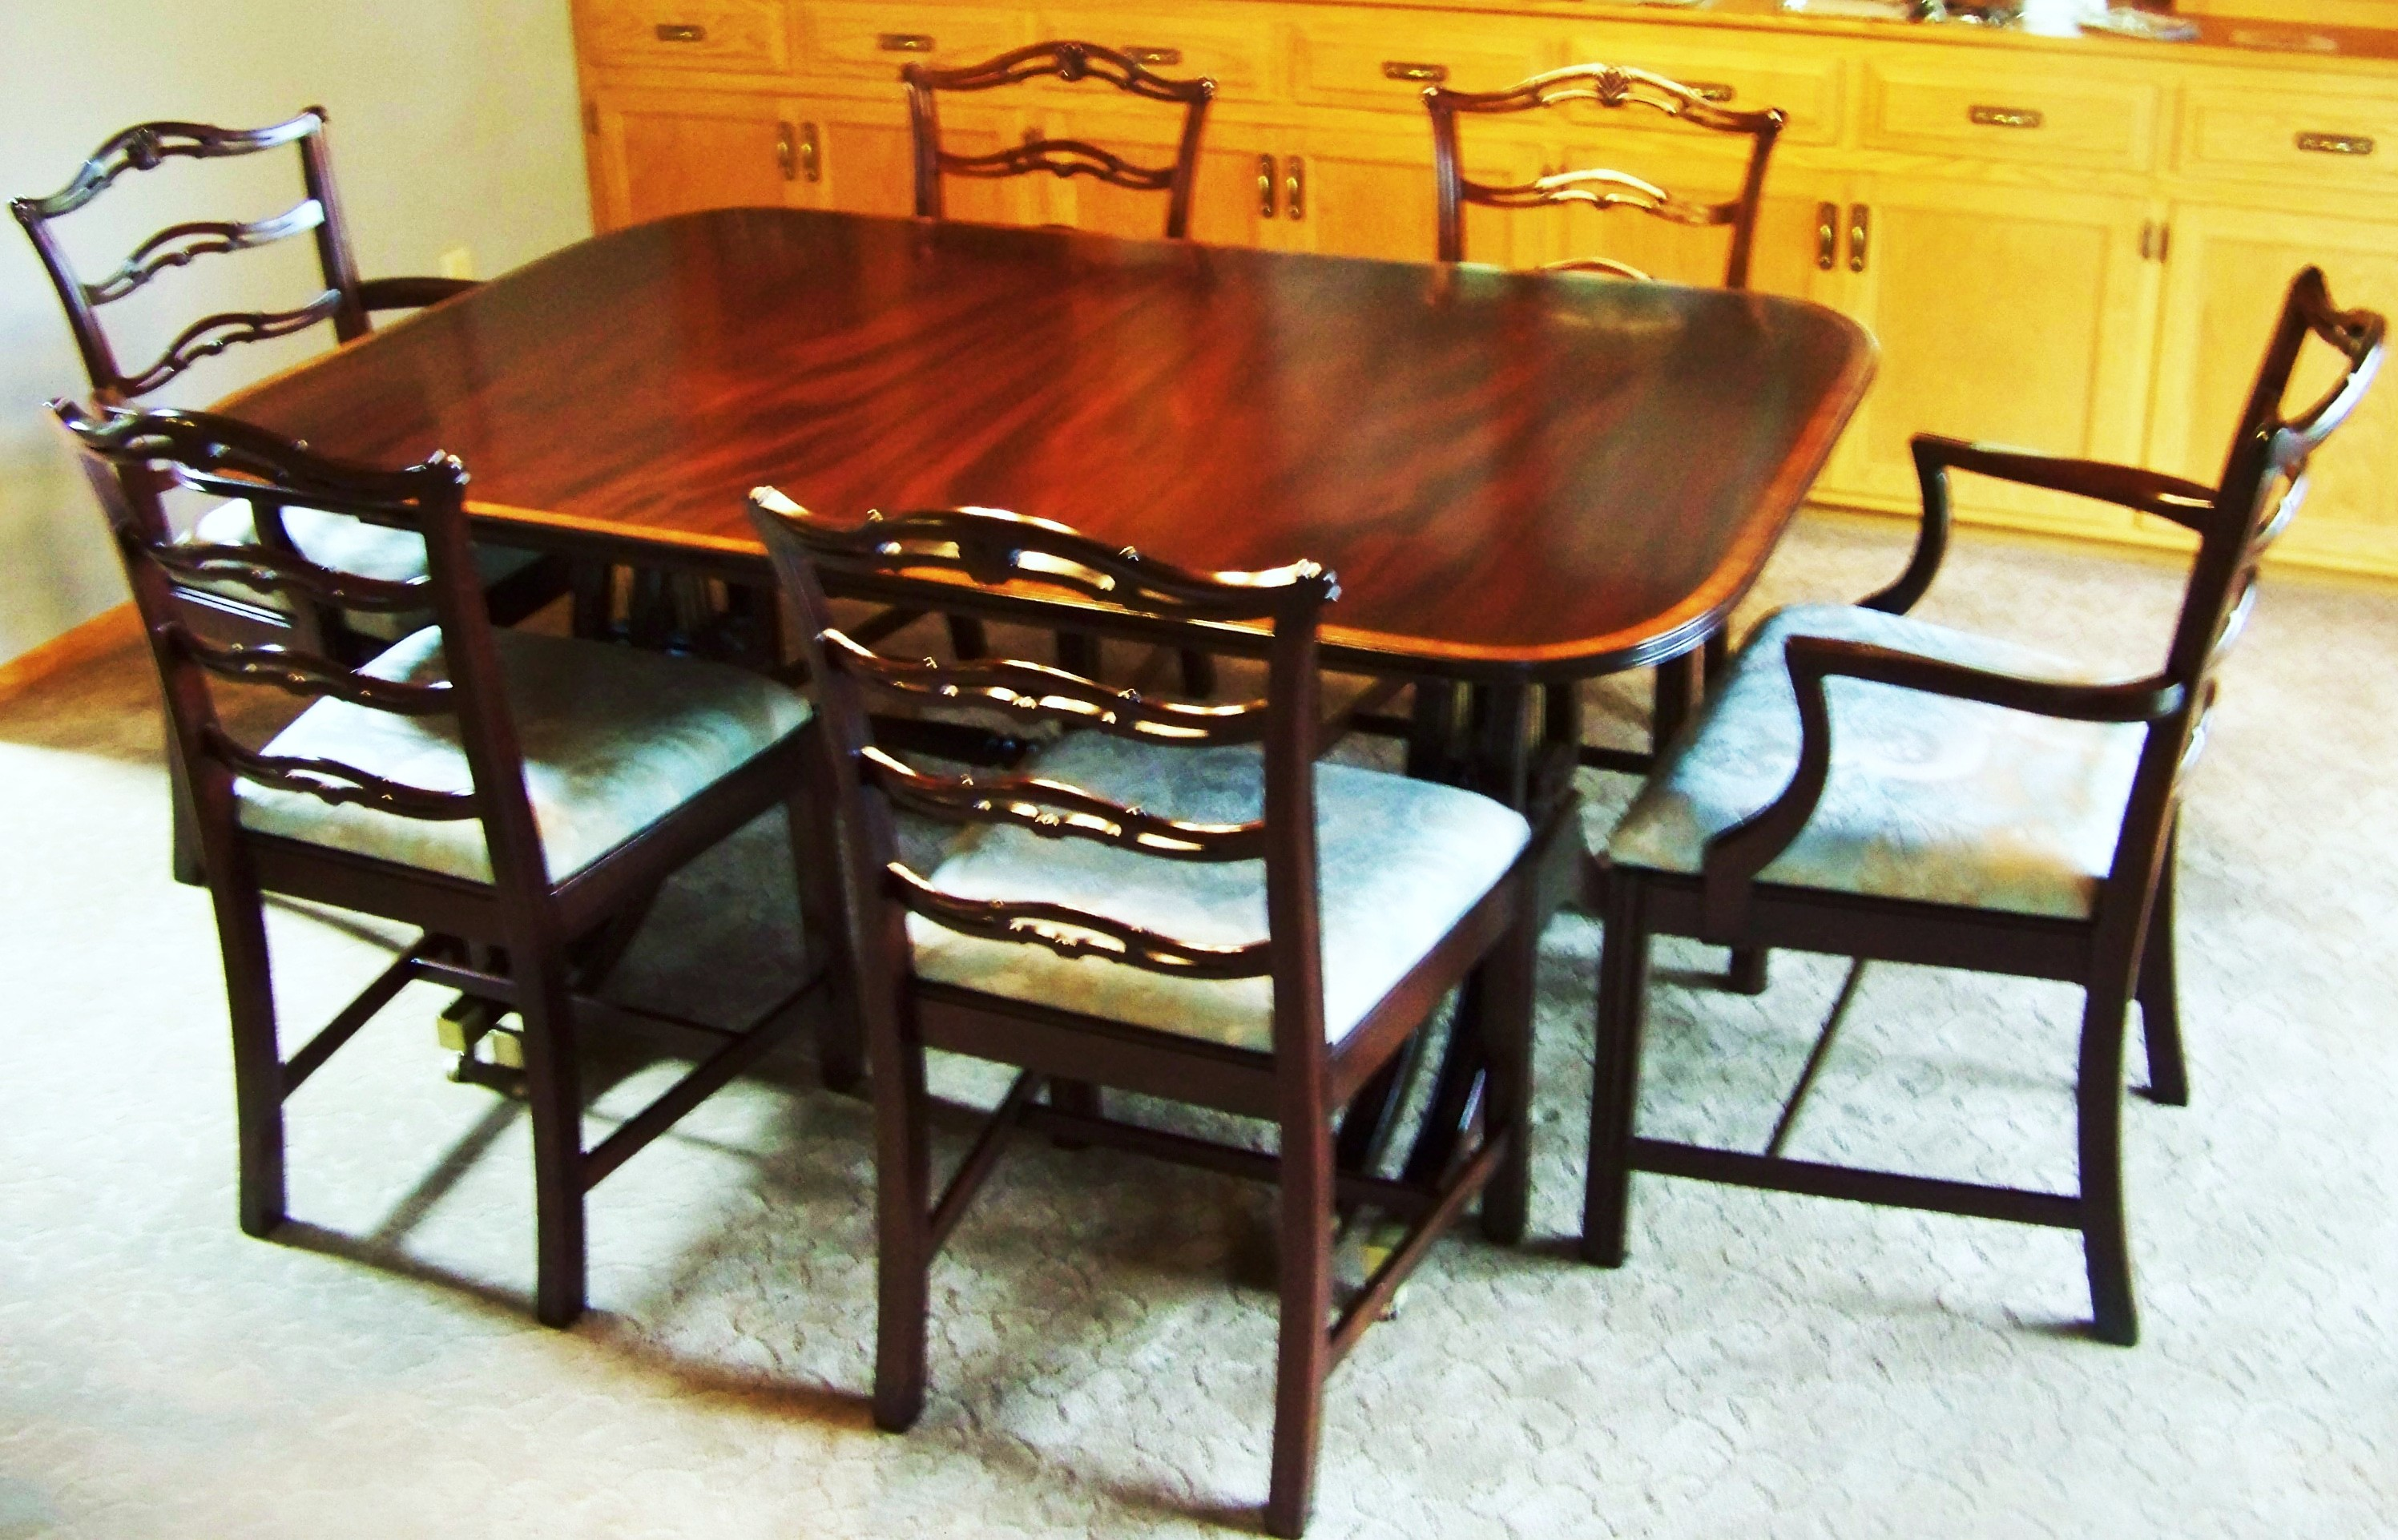 Dining Room Table And Chairs We Were Chosen By A Hartland Customer To Restore Their Dining Room Set We Reglued All The Chairs, Reupholstered The Seats, And Custom Finished The Set To Fit Their Decor